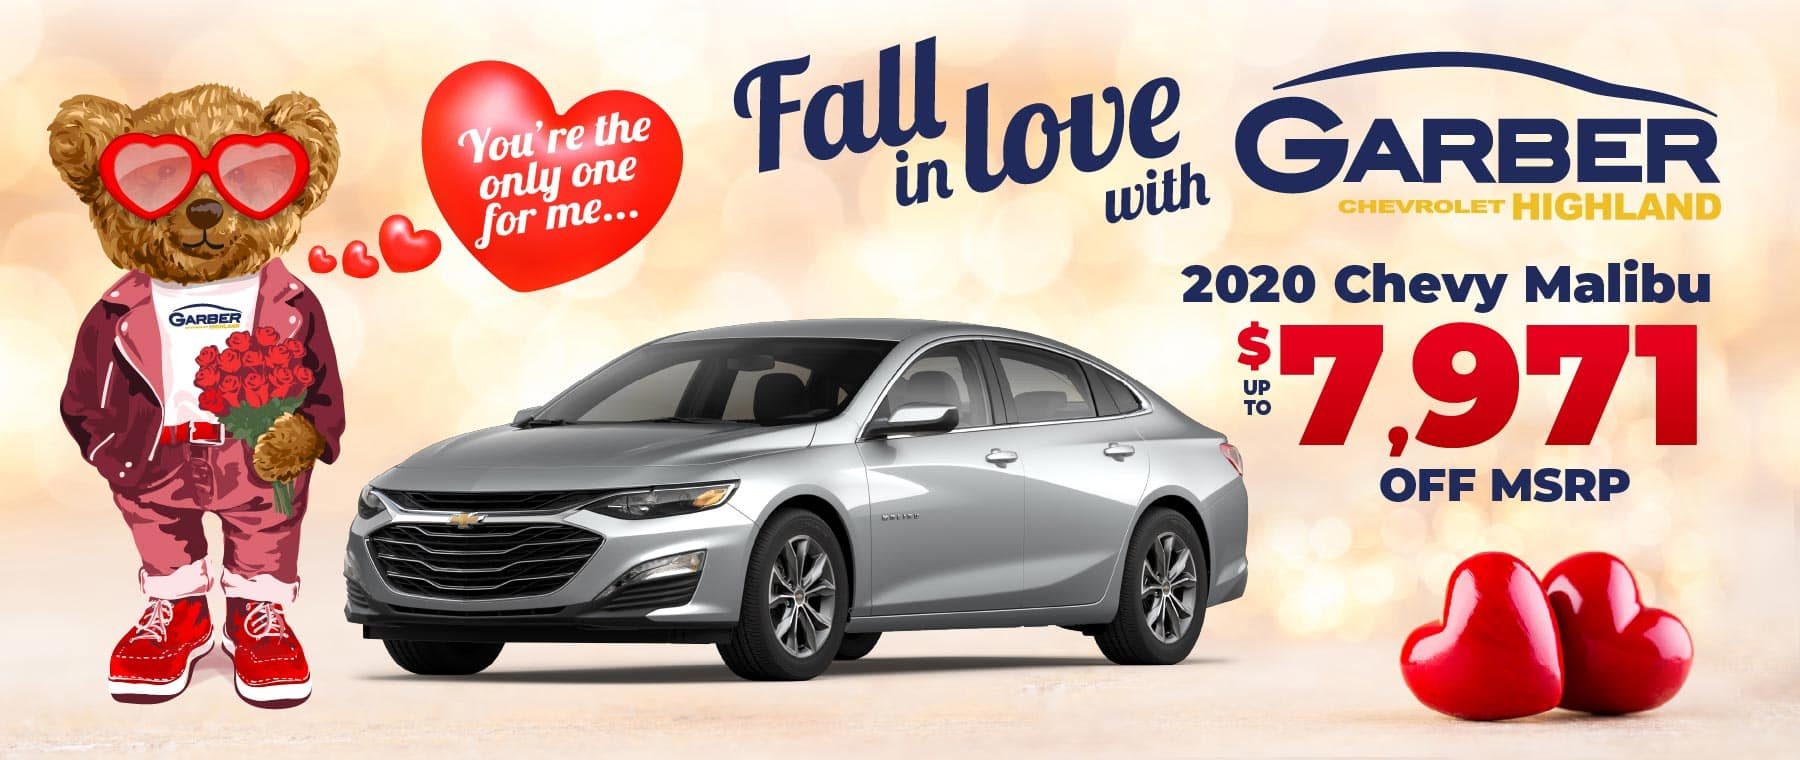 2020 Chevy Malibu - up to $7971 off MSRP